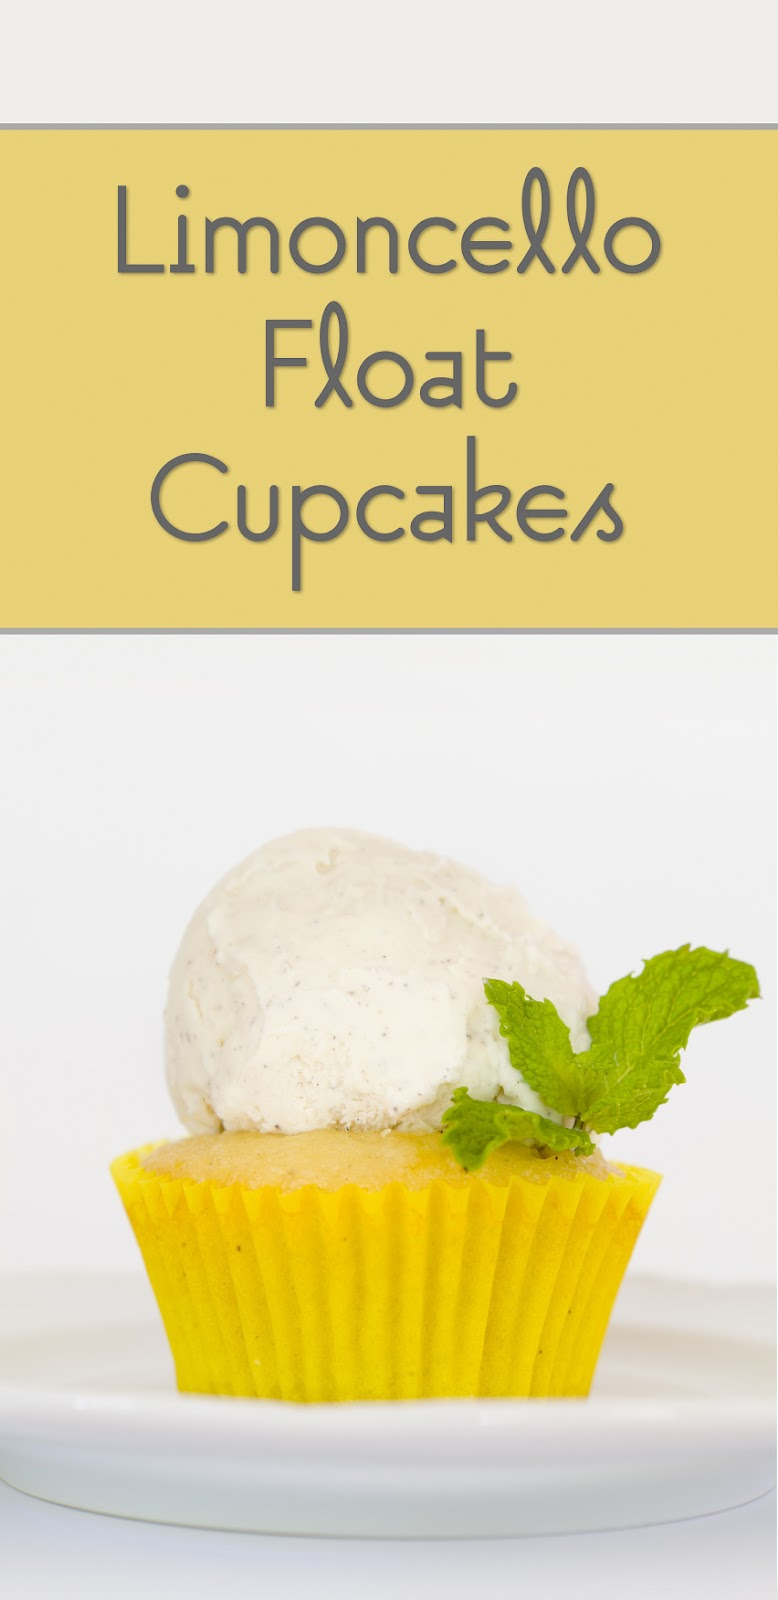 Limoncello Float Cupcakes | Cupcake Project